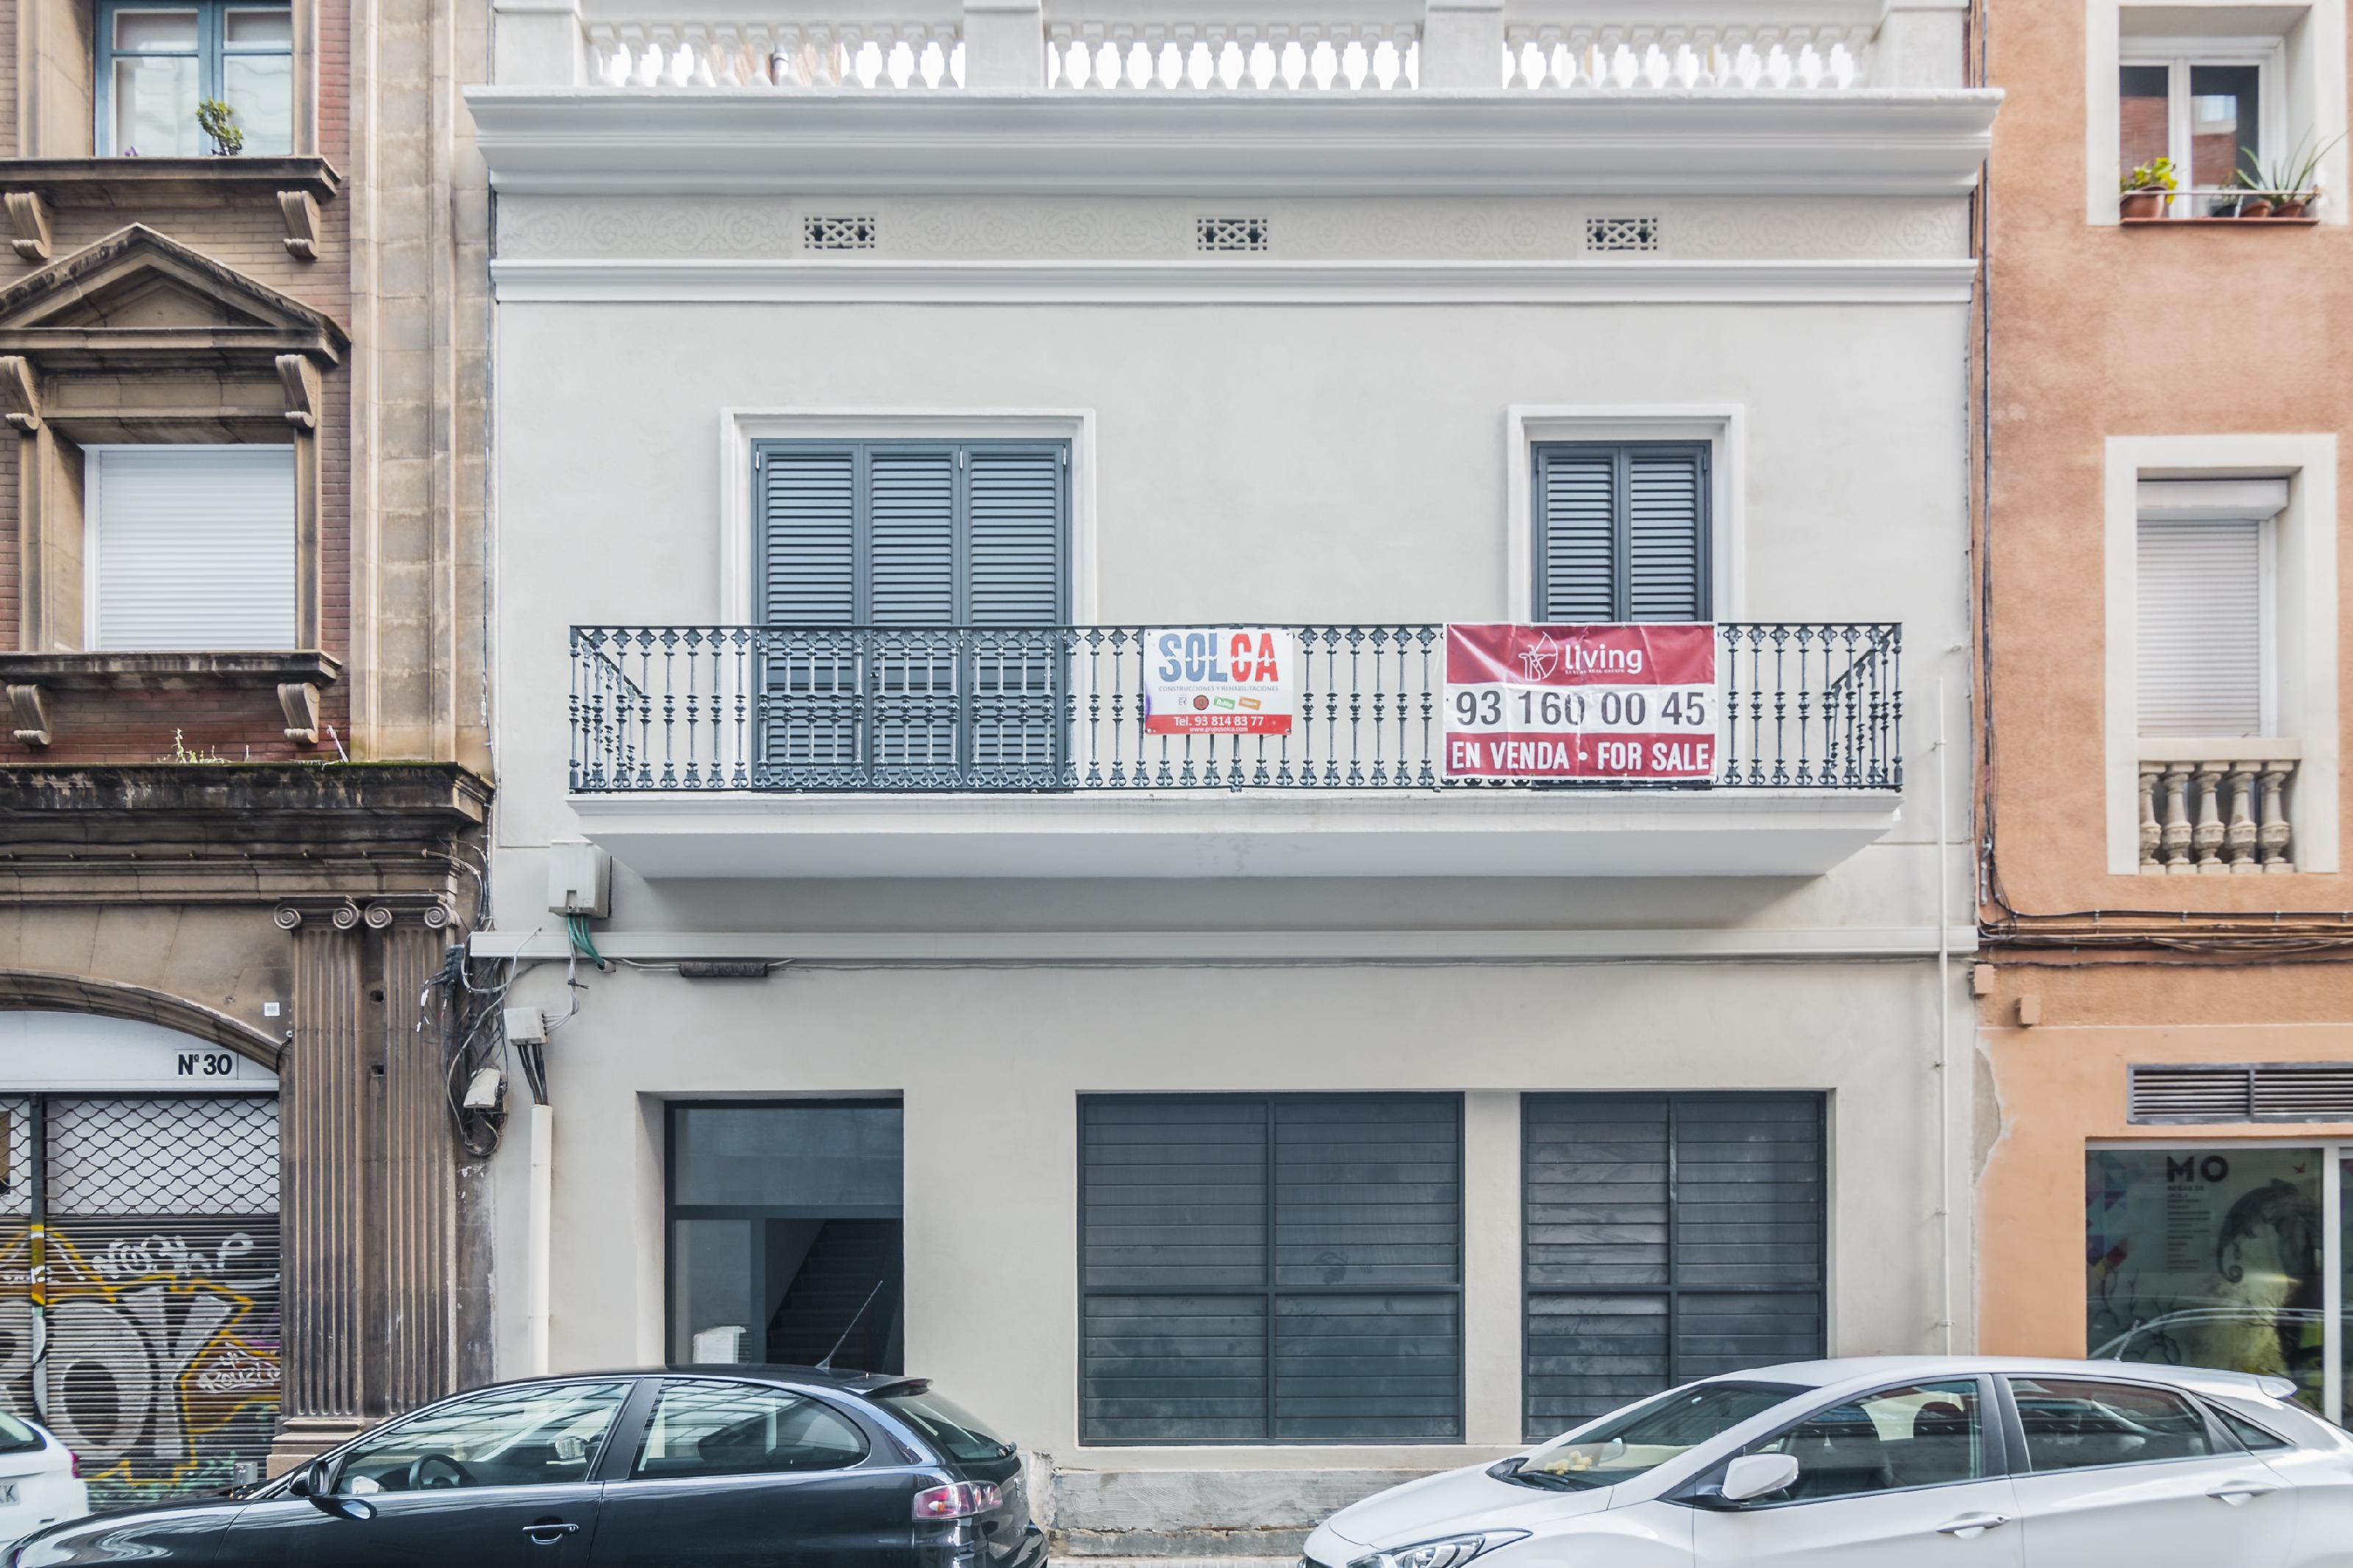 220650 Ground floor for sale in Sarrià-Sant Gervasi, Sant Gervasi-Galvany 21